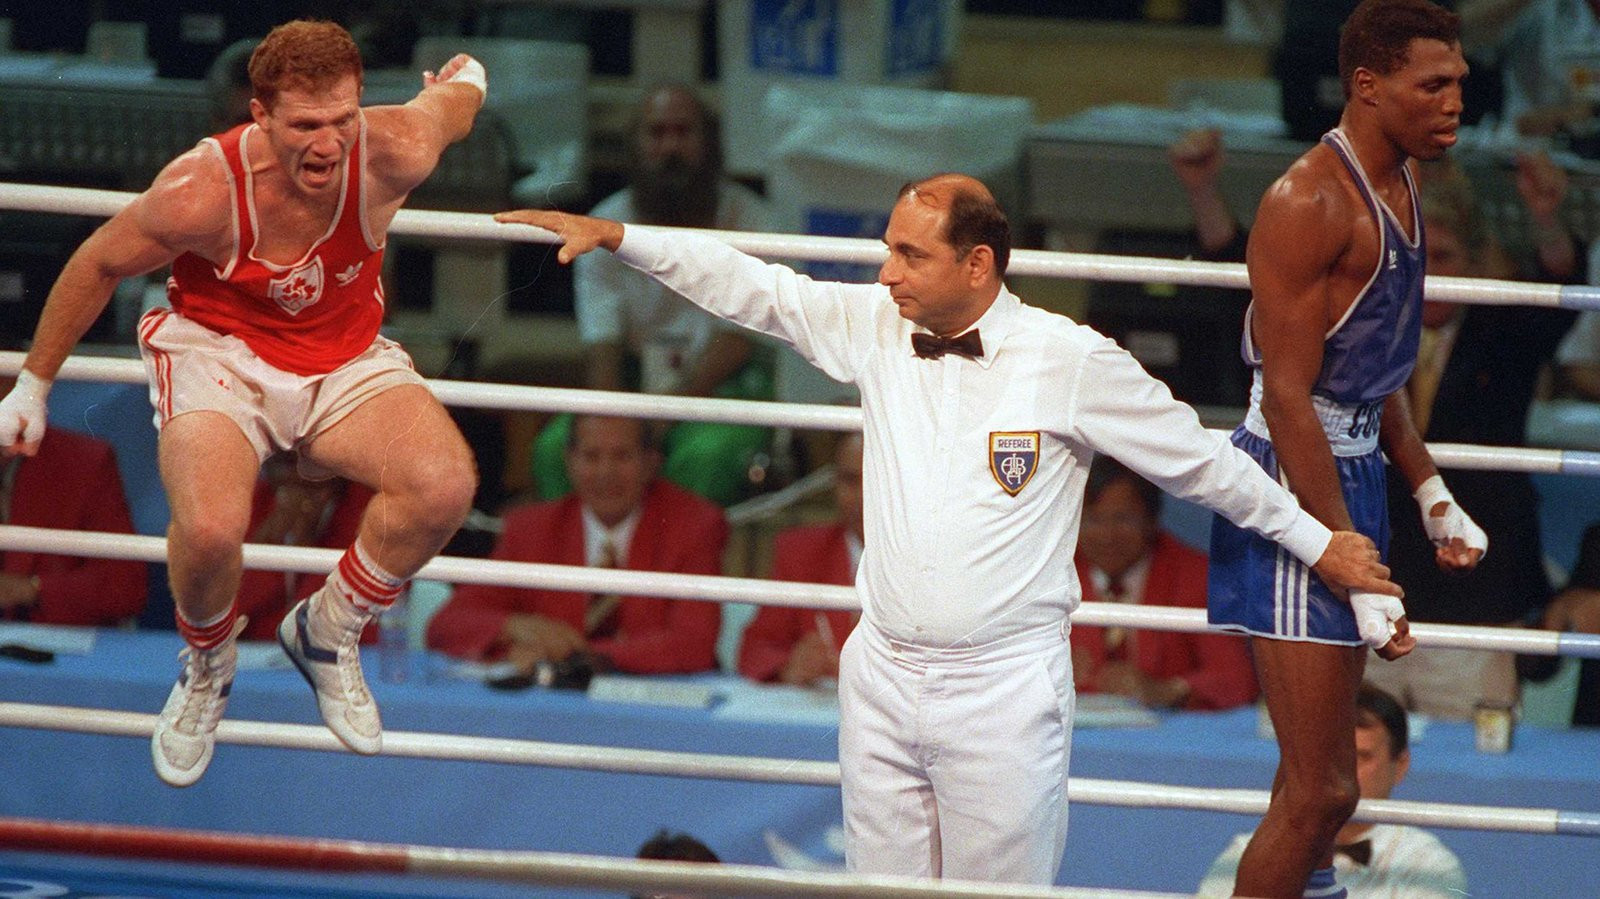 Boxing is Ireland's most successful Olympic sport with a total of 16 medals, including gold for Michael Carruth at Barcelona 1992, one more than all other sports combined ©Getty Images